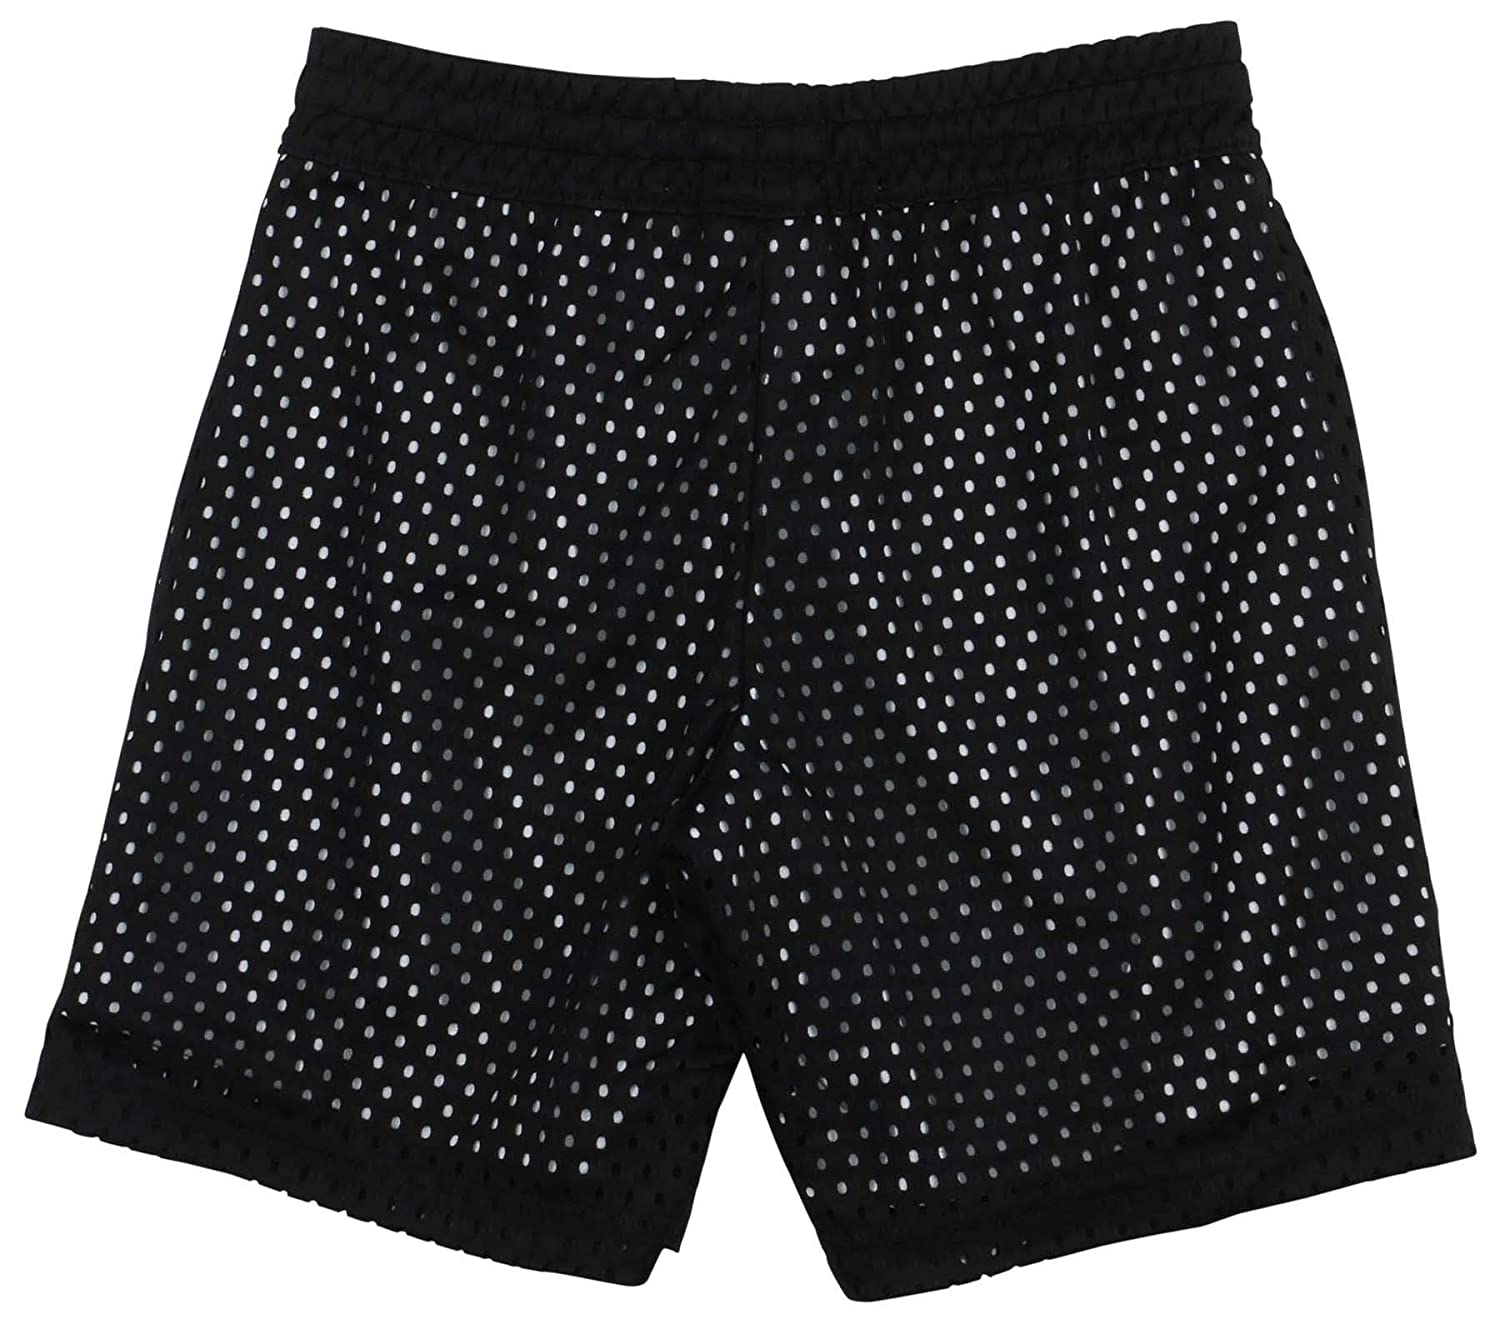 Nike Big Girls Dri-Fit Mesh Training Shorts 7-16